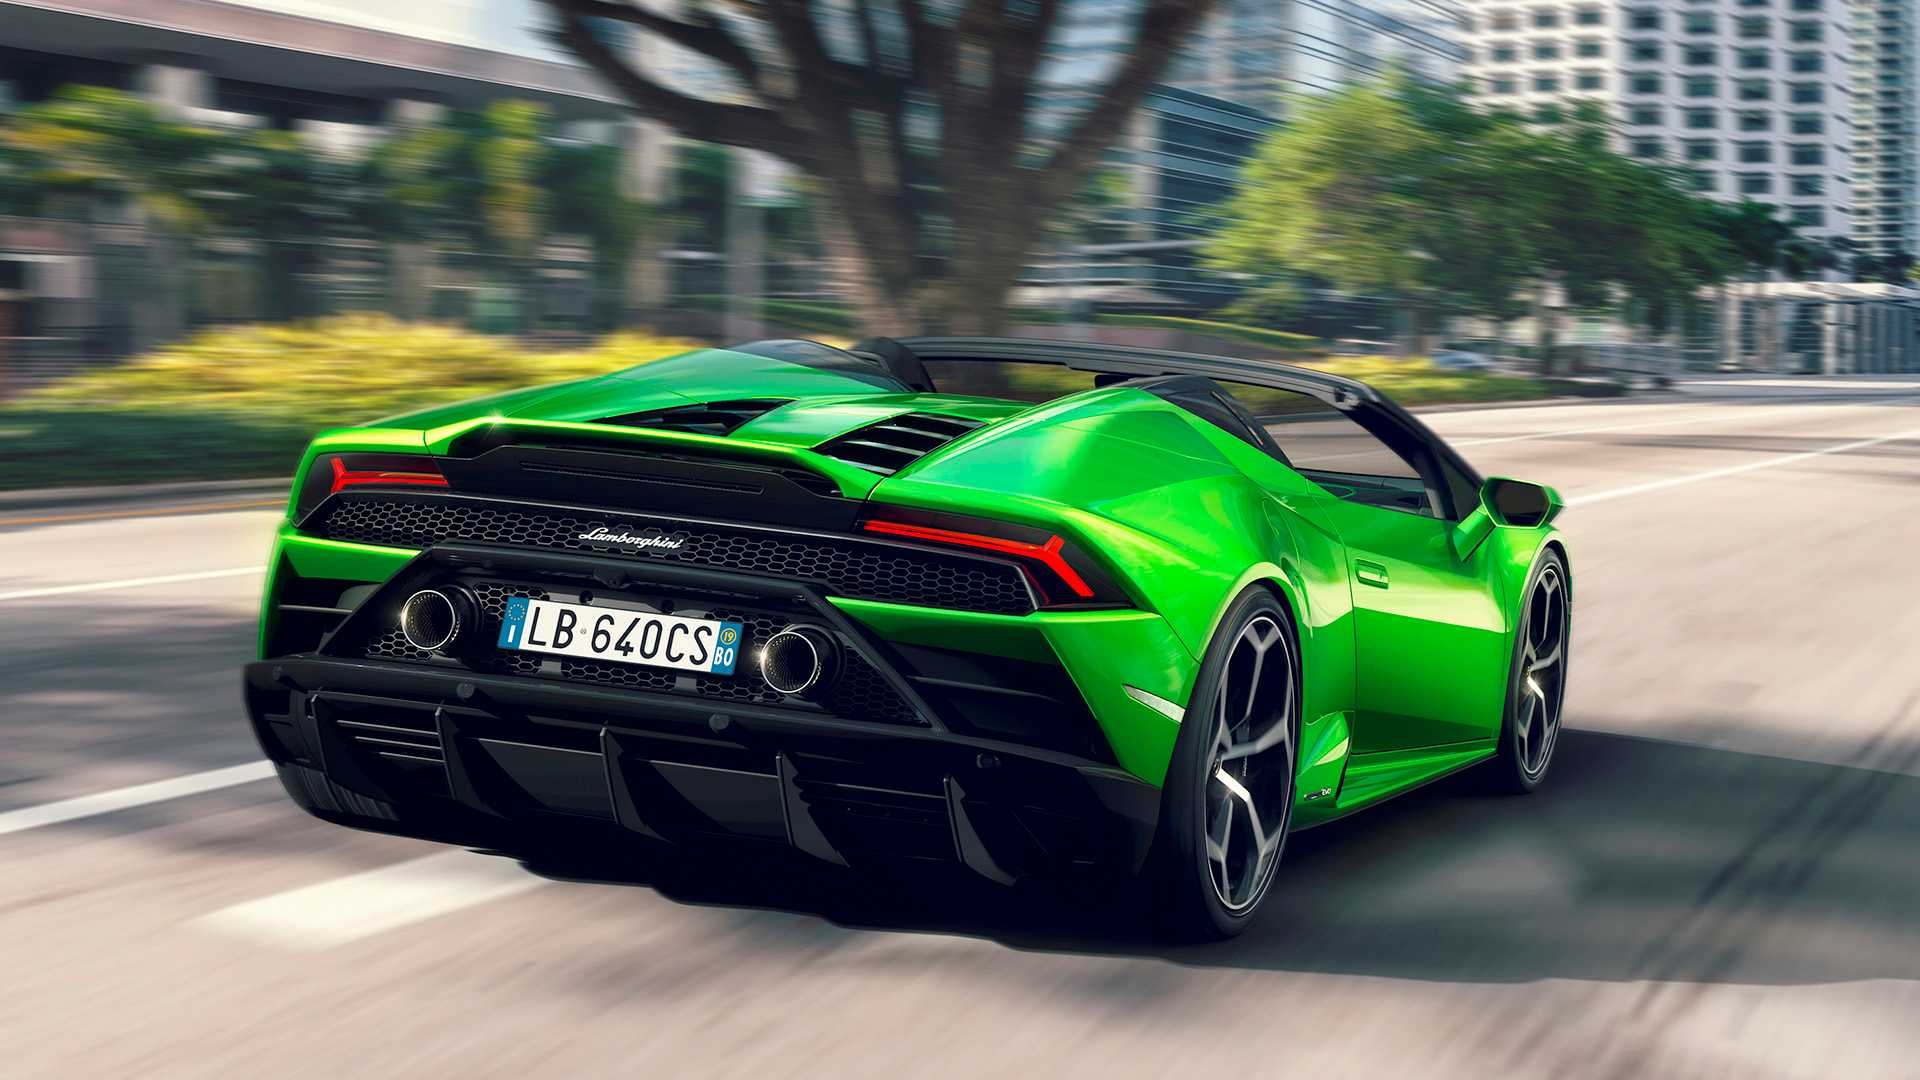 2019 Lamborghini Huracan Evo Spyder Wallpapers 27 Hd Images